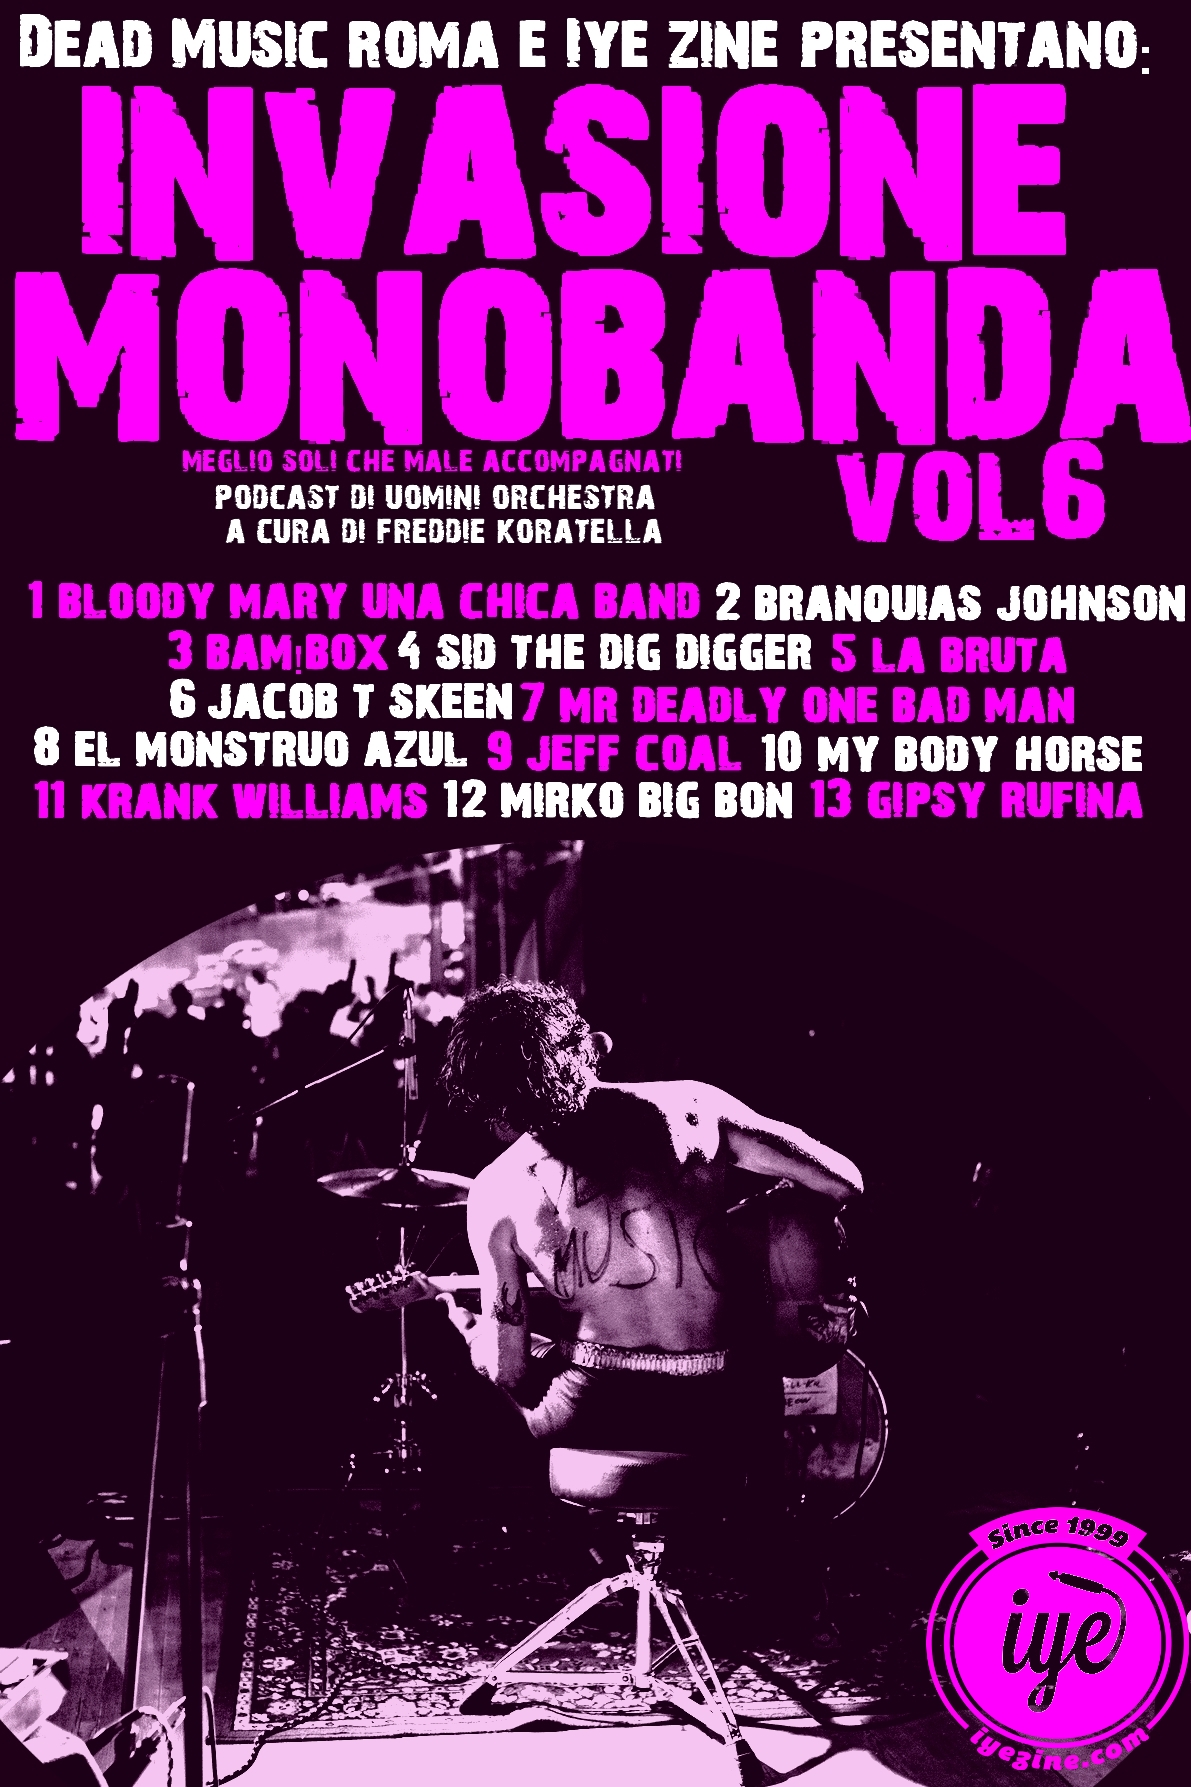 Invasione Monobanda vol. 6 2 - fanzine